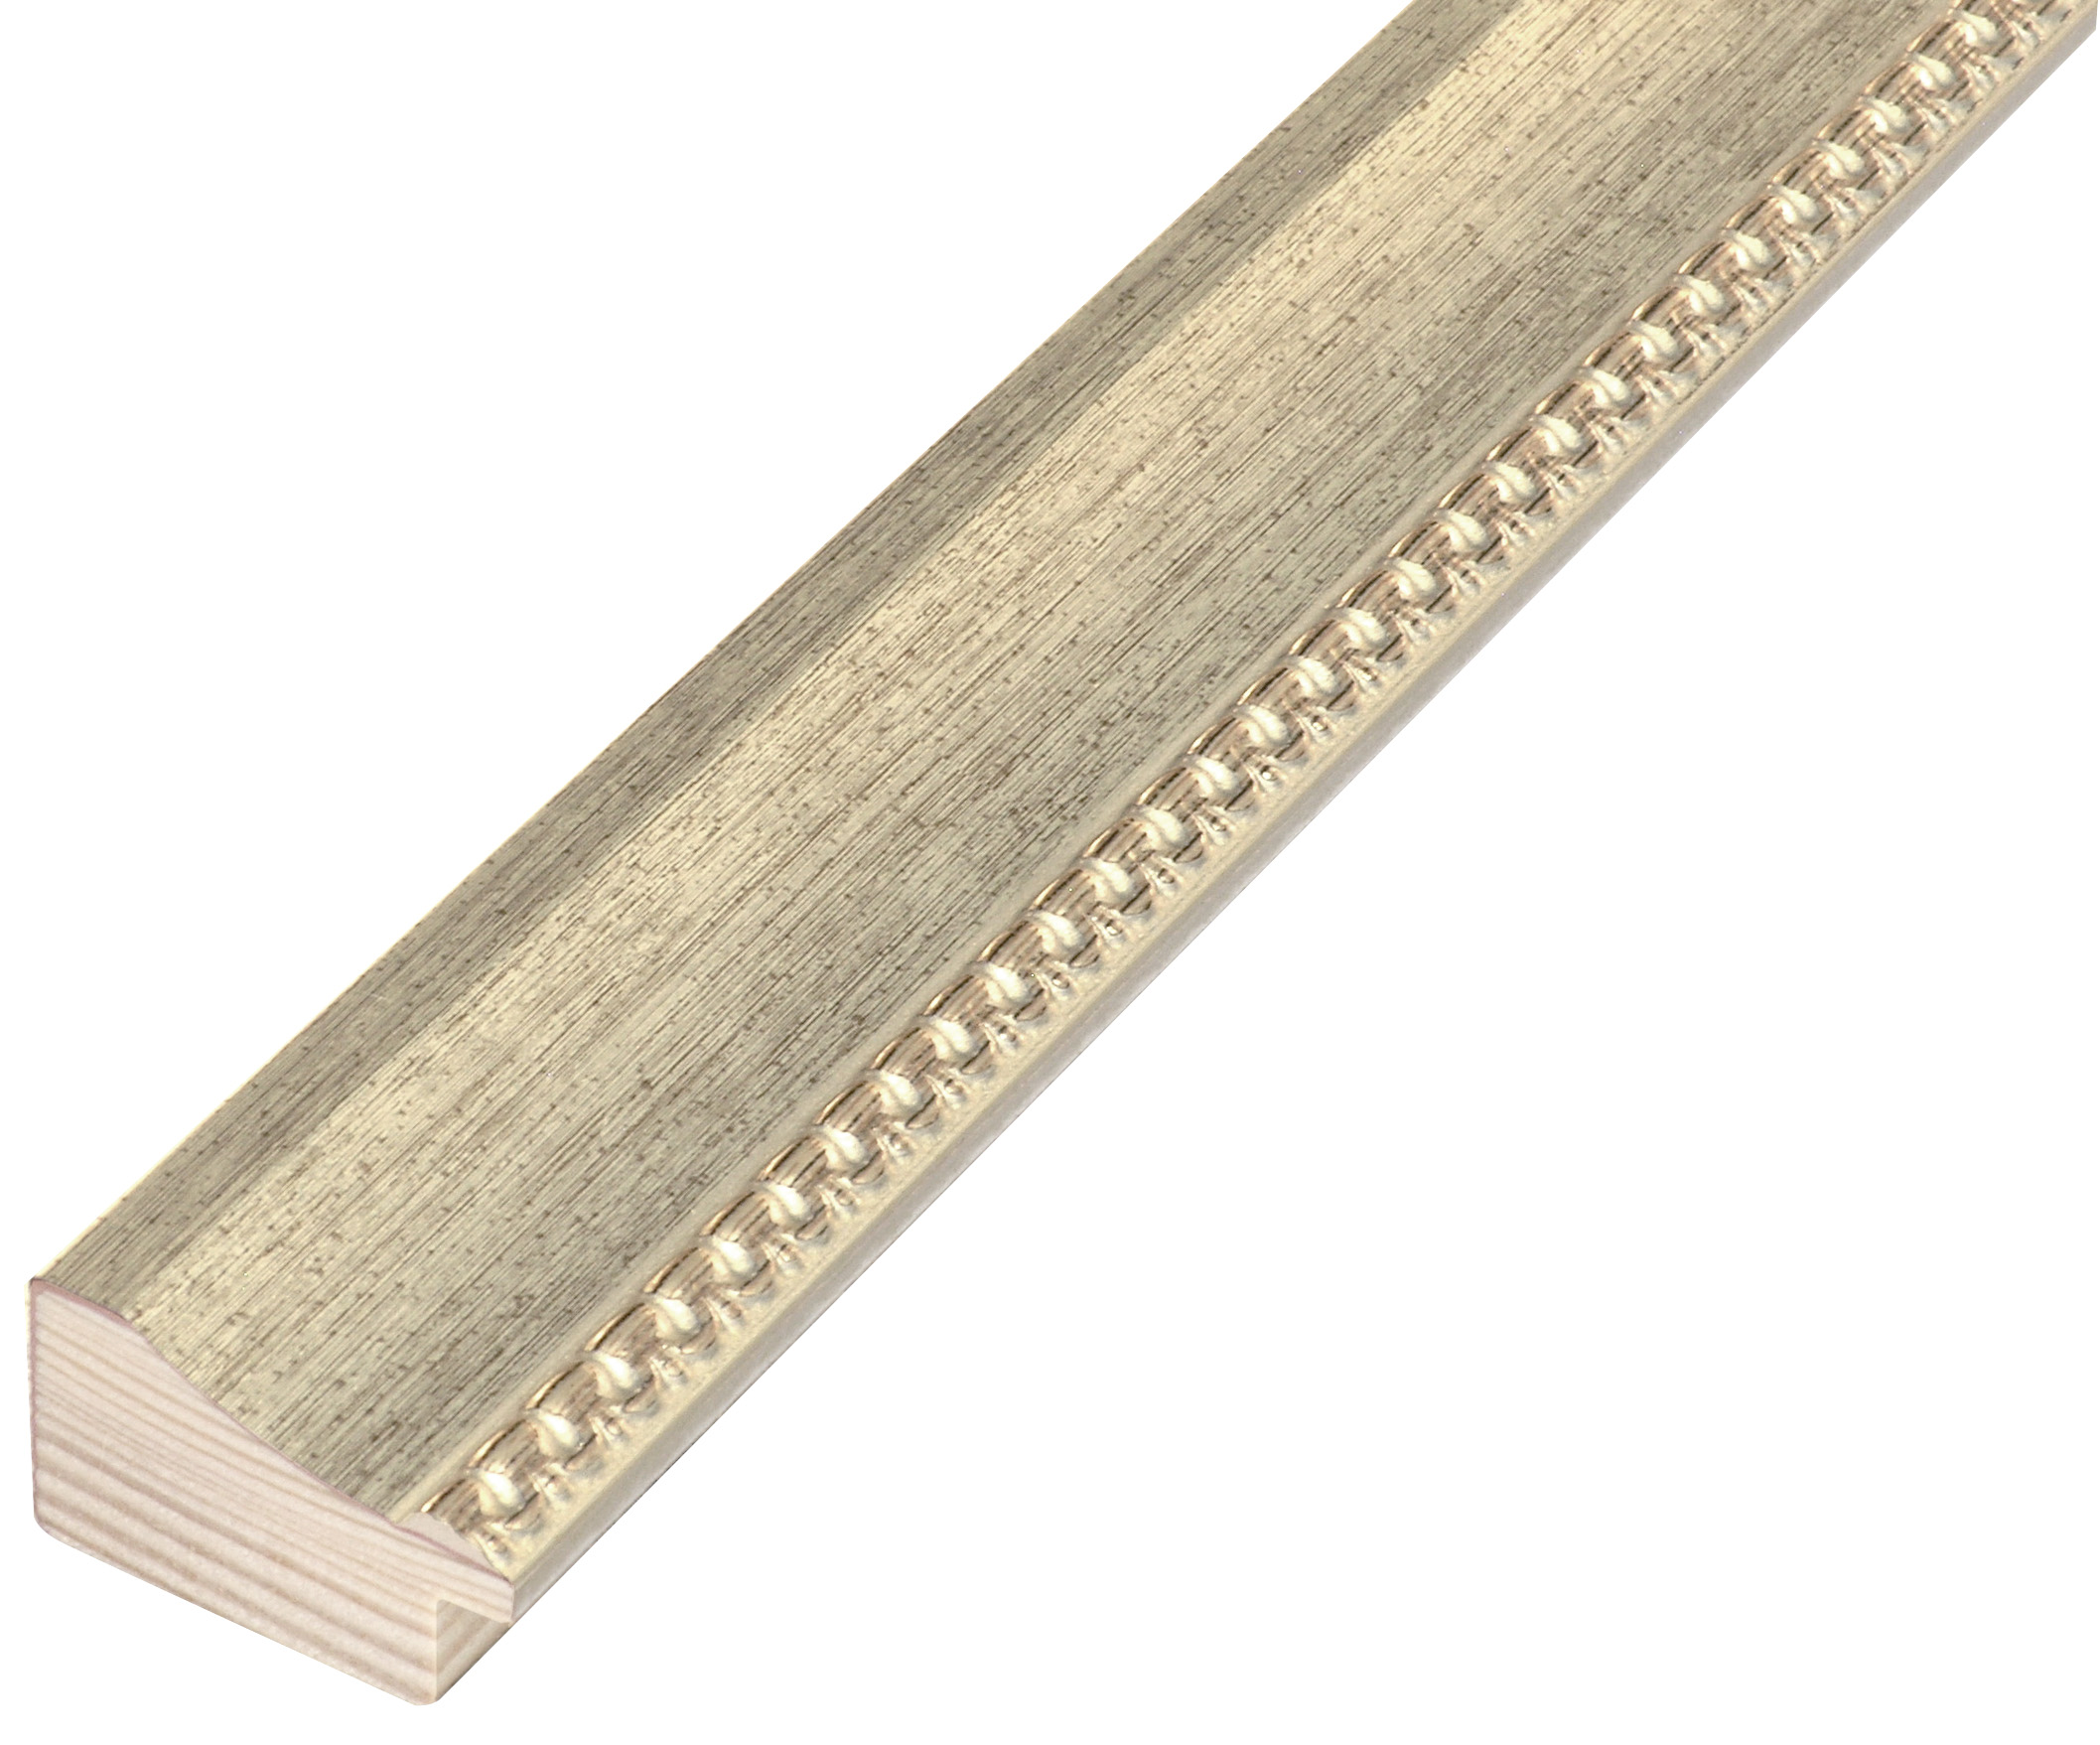 Moulding fir jointed, width 35mm height 20 - warm silver